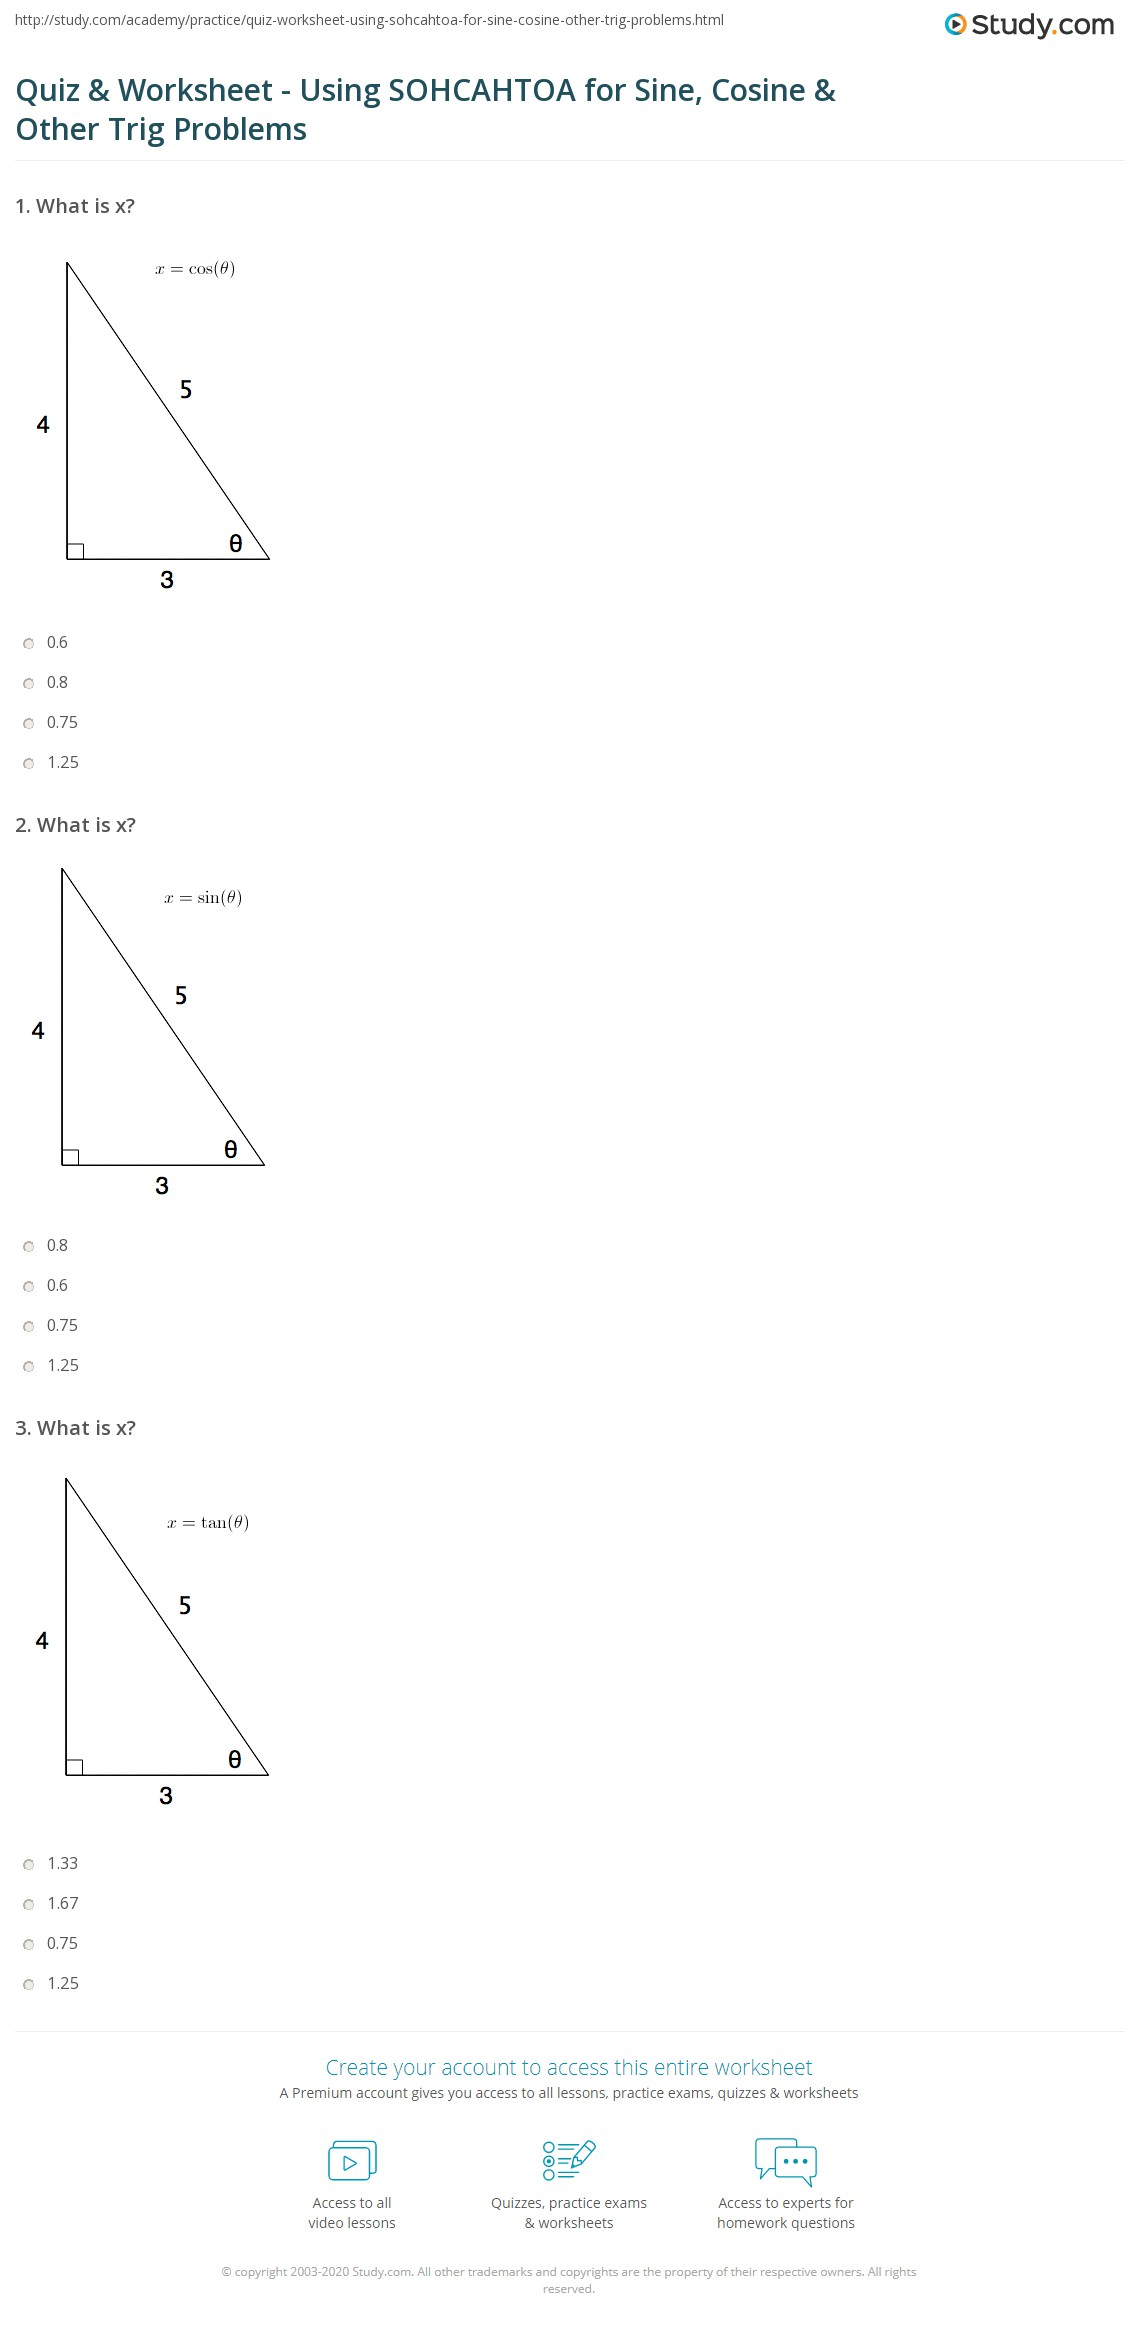 Worksheet Sohcahtoa Worksheet quiz worksheet using sohcahtoa for sine cosine other trig print trigonometry and worksheet